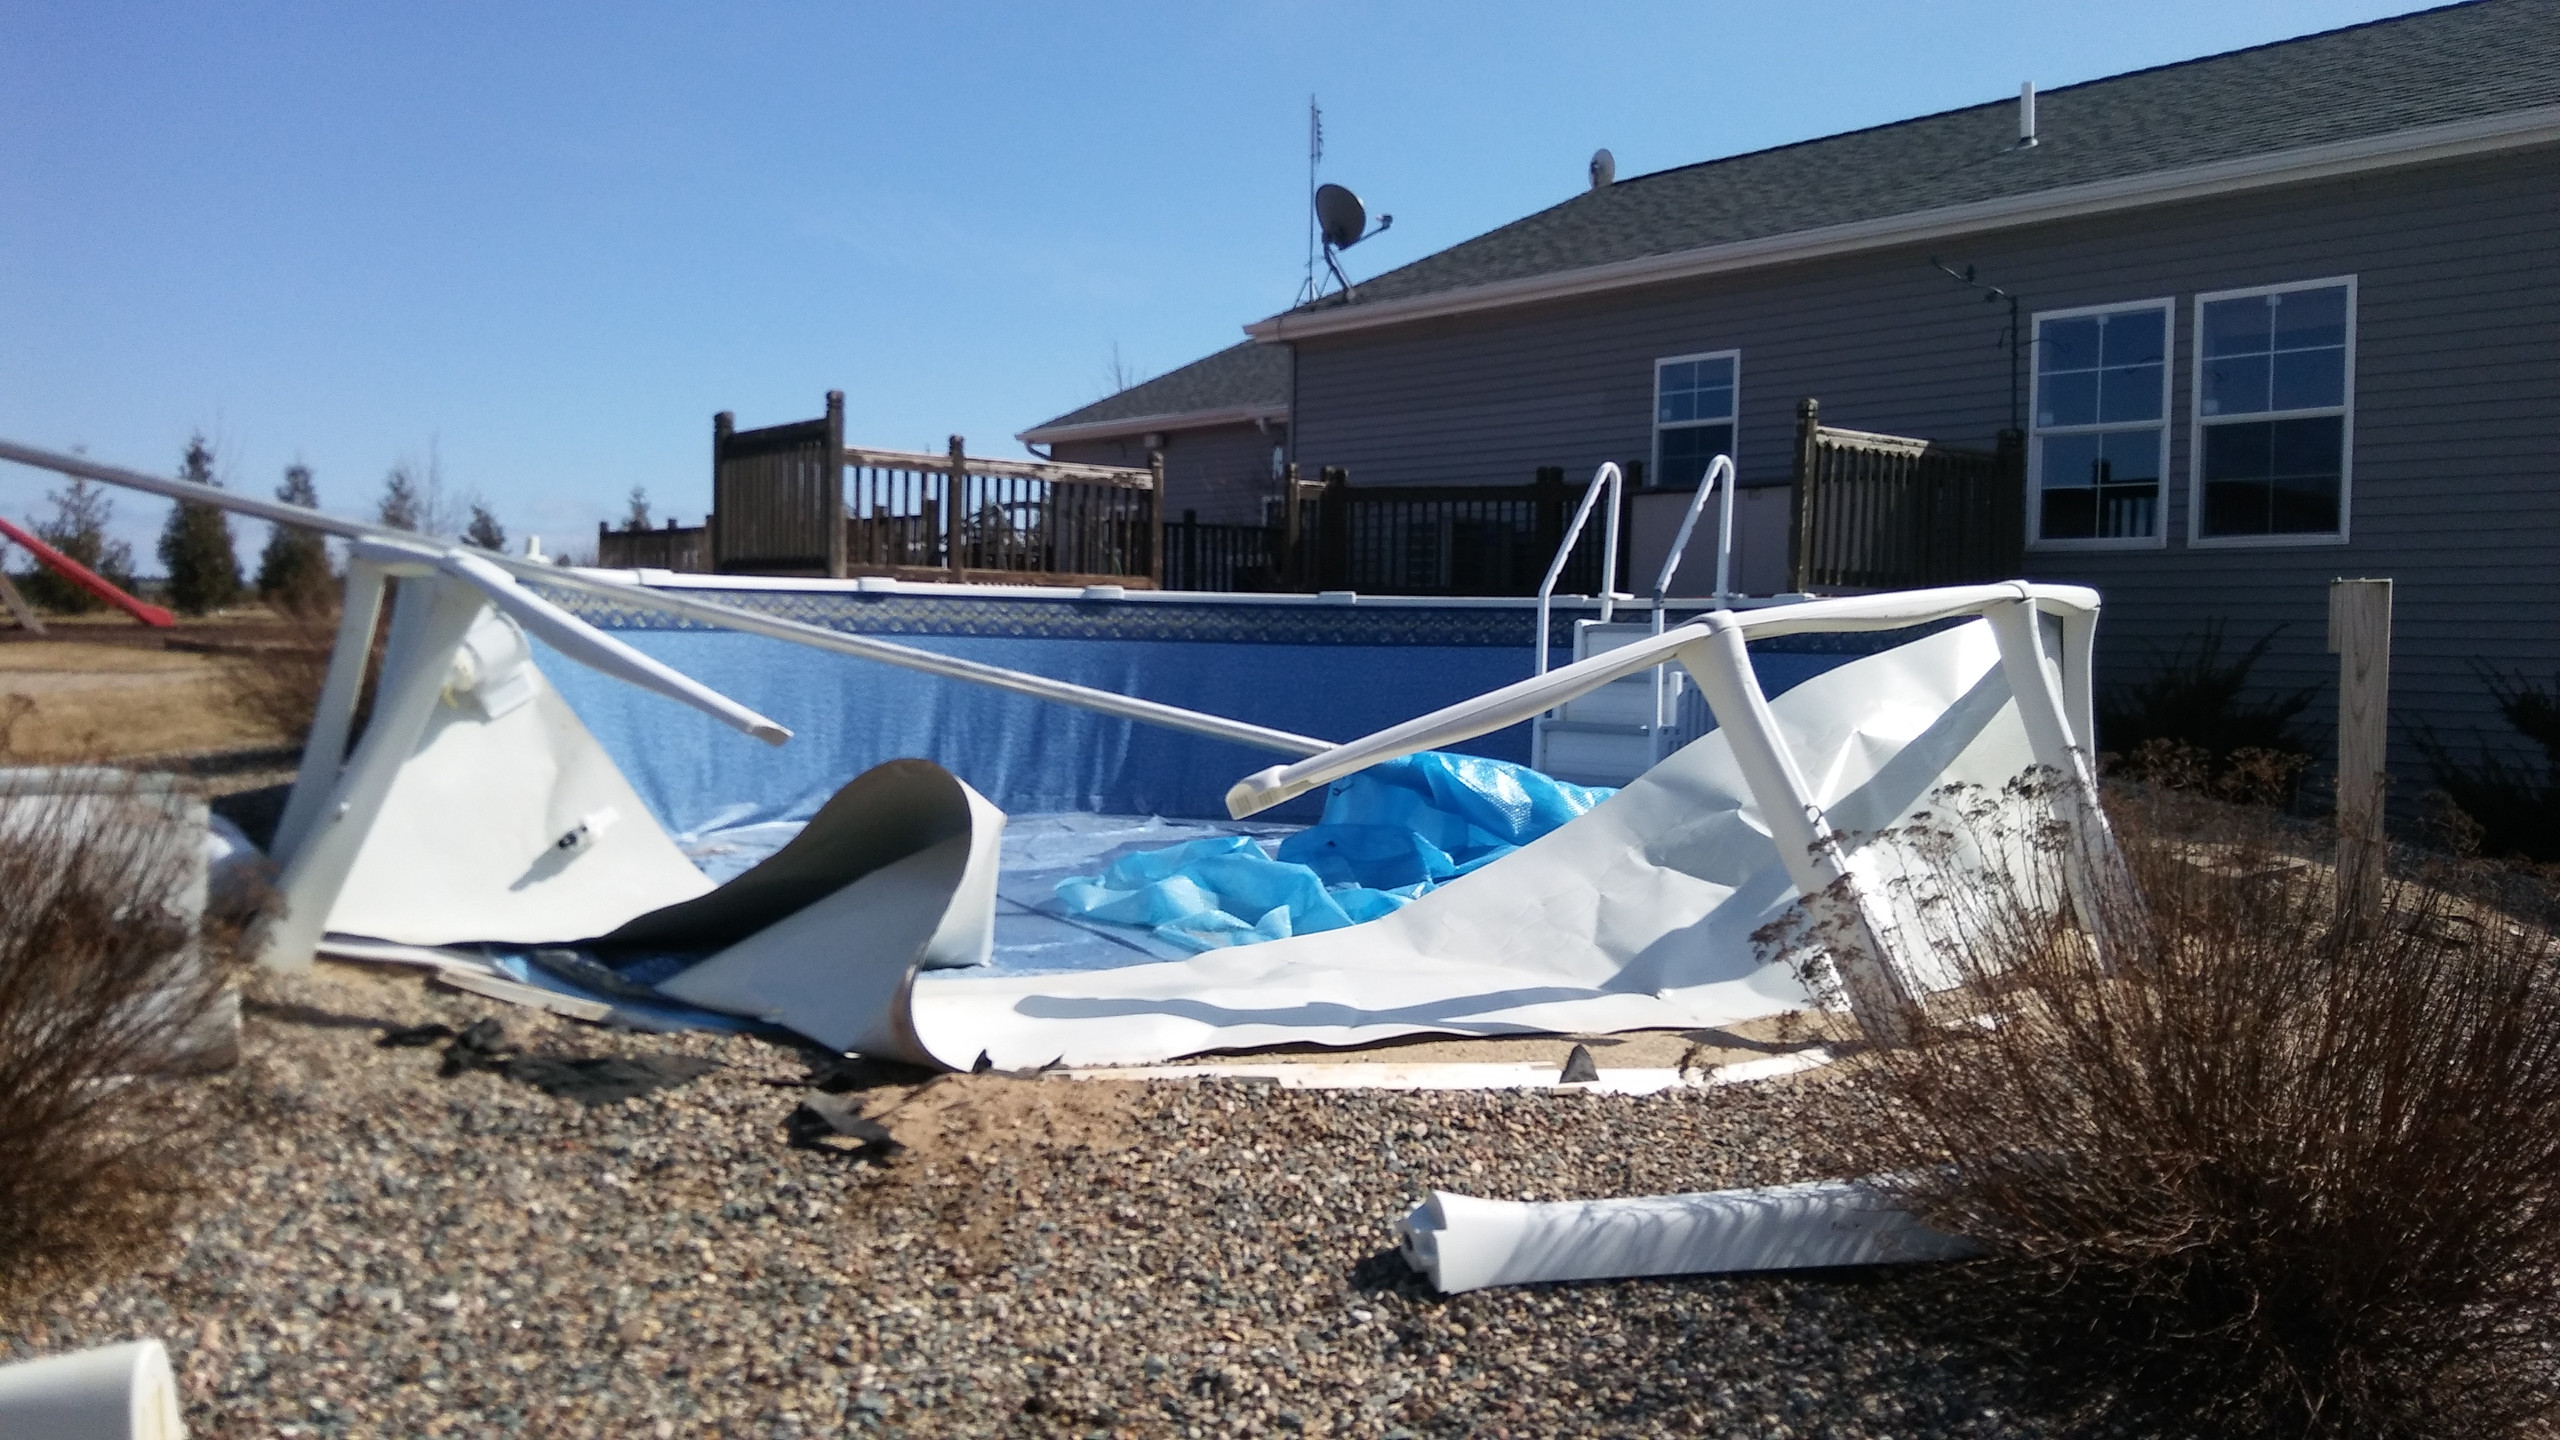 This Vogue Above Ground Pool Purchased from Poolworks was built in Algoma, WI buy the homeowner. The pool was damaged due to use of patio blocks during installation.